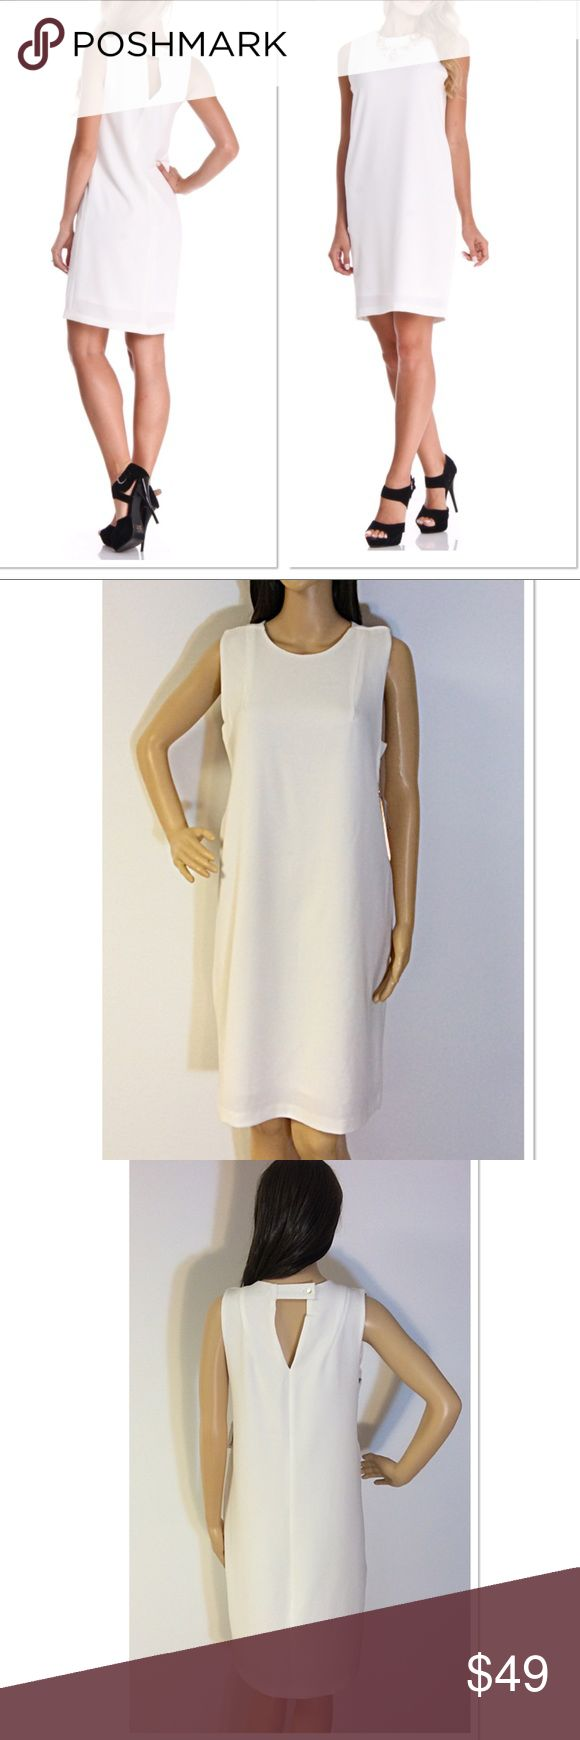 """🎈1 HR SALE🎈DEX THE SUIT SHOP IVORY SHEATH DRESS Gorgeous dress with a keyhole back and loose fit. Fully lined. Very classy IVORY color. Measurements lying flat Bust 18.5"""" length 37"""".  Color is more like photos on mannequin instead of stock photos. Stunning piece. Dex The Suit Shop New York Dresses Midi"""